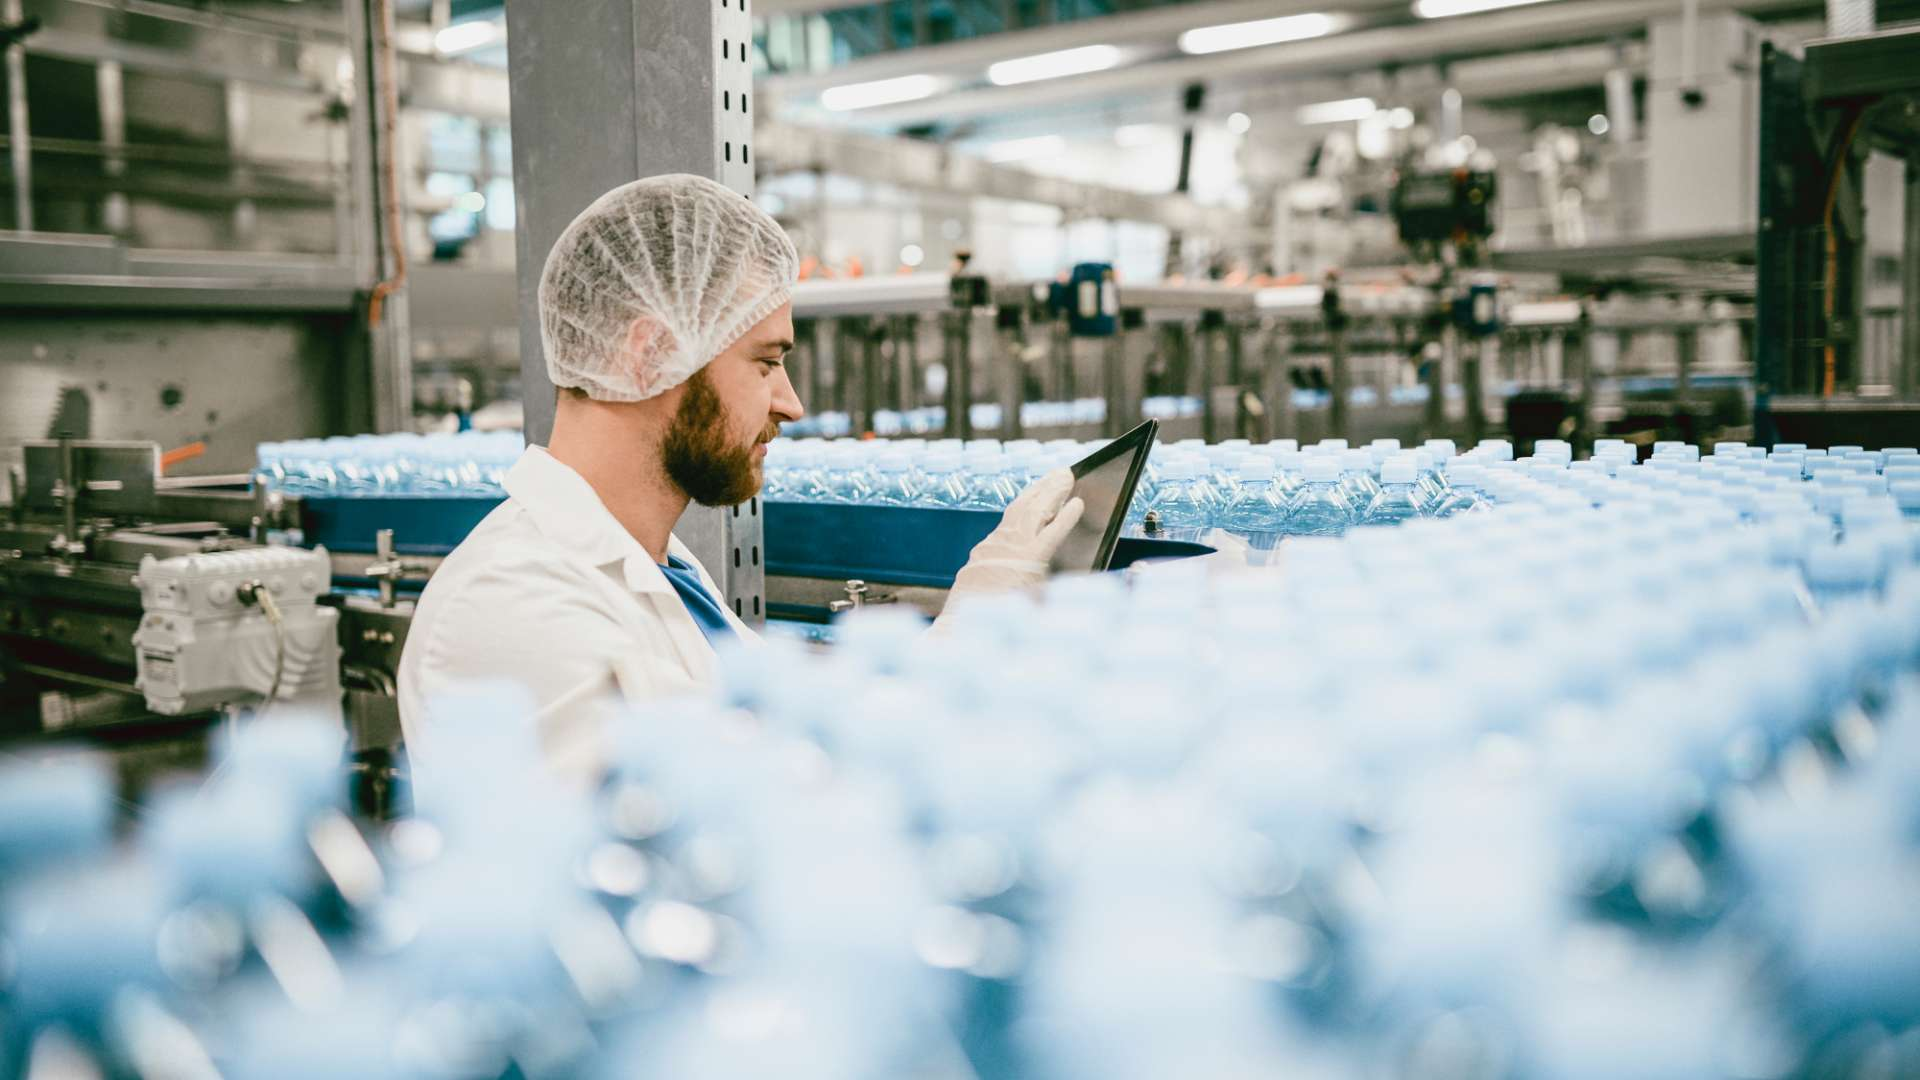 A photo of a man working in a packaging factory scanning finished products using a tablet device